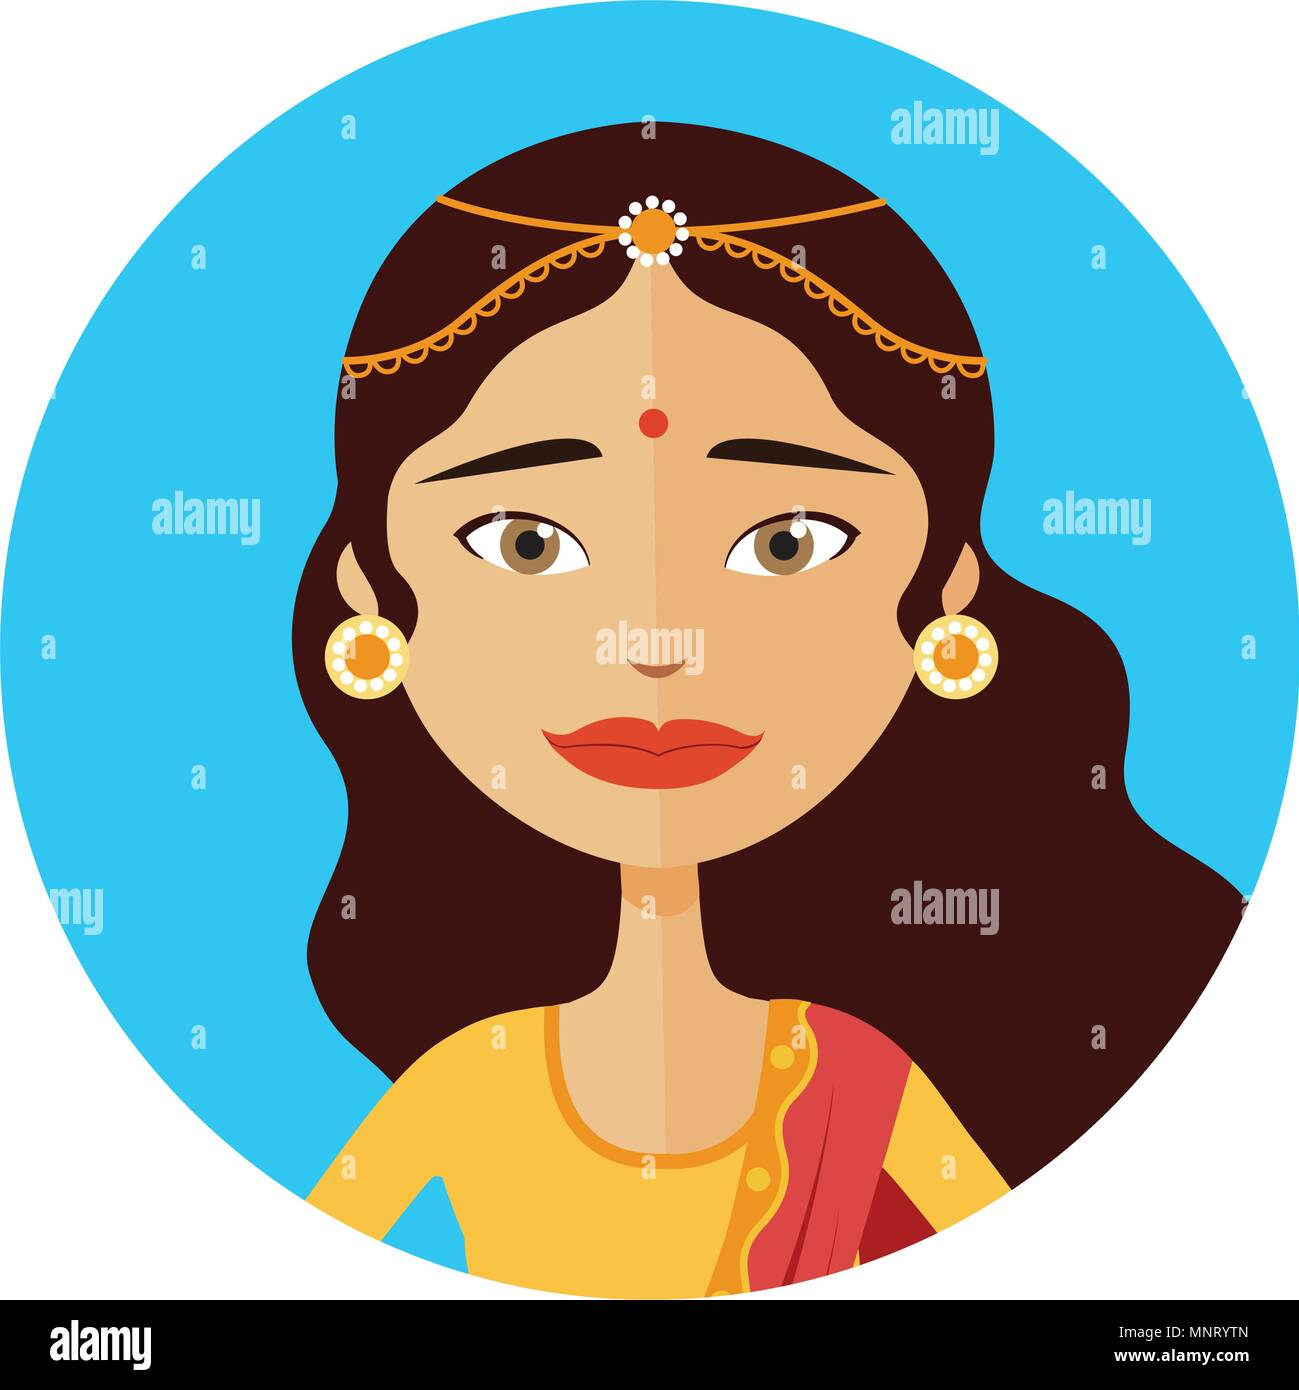 Indian woman avatar vector illustration isolated - Stock Vector